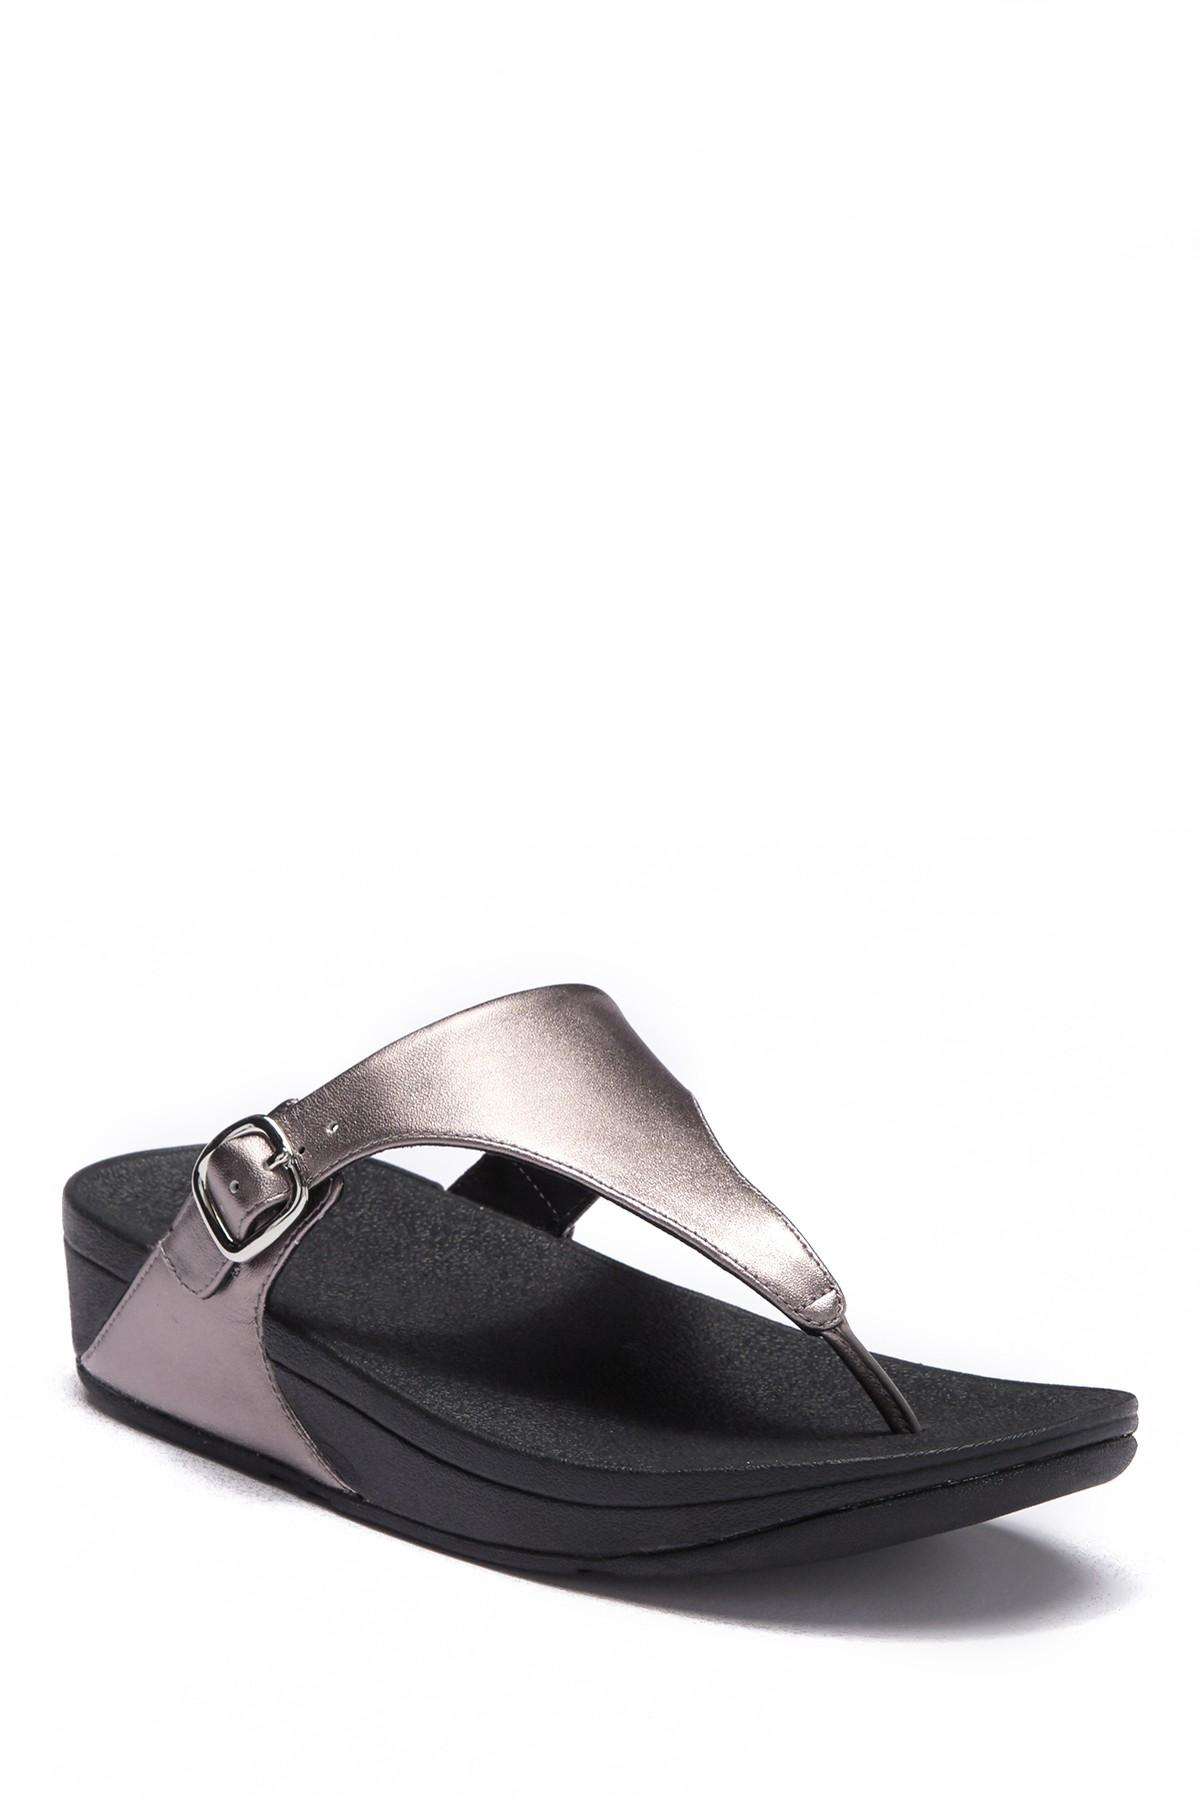 c8a9f1df0 Fitflop. Women s The Skinny Metallic Platform Sandal.  90  52 From Nordstrom  Rack